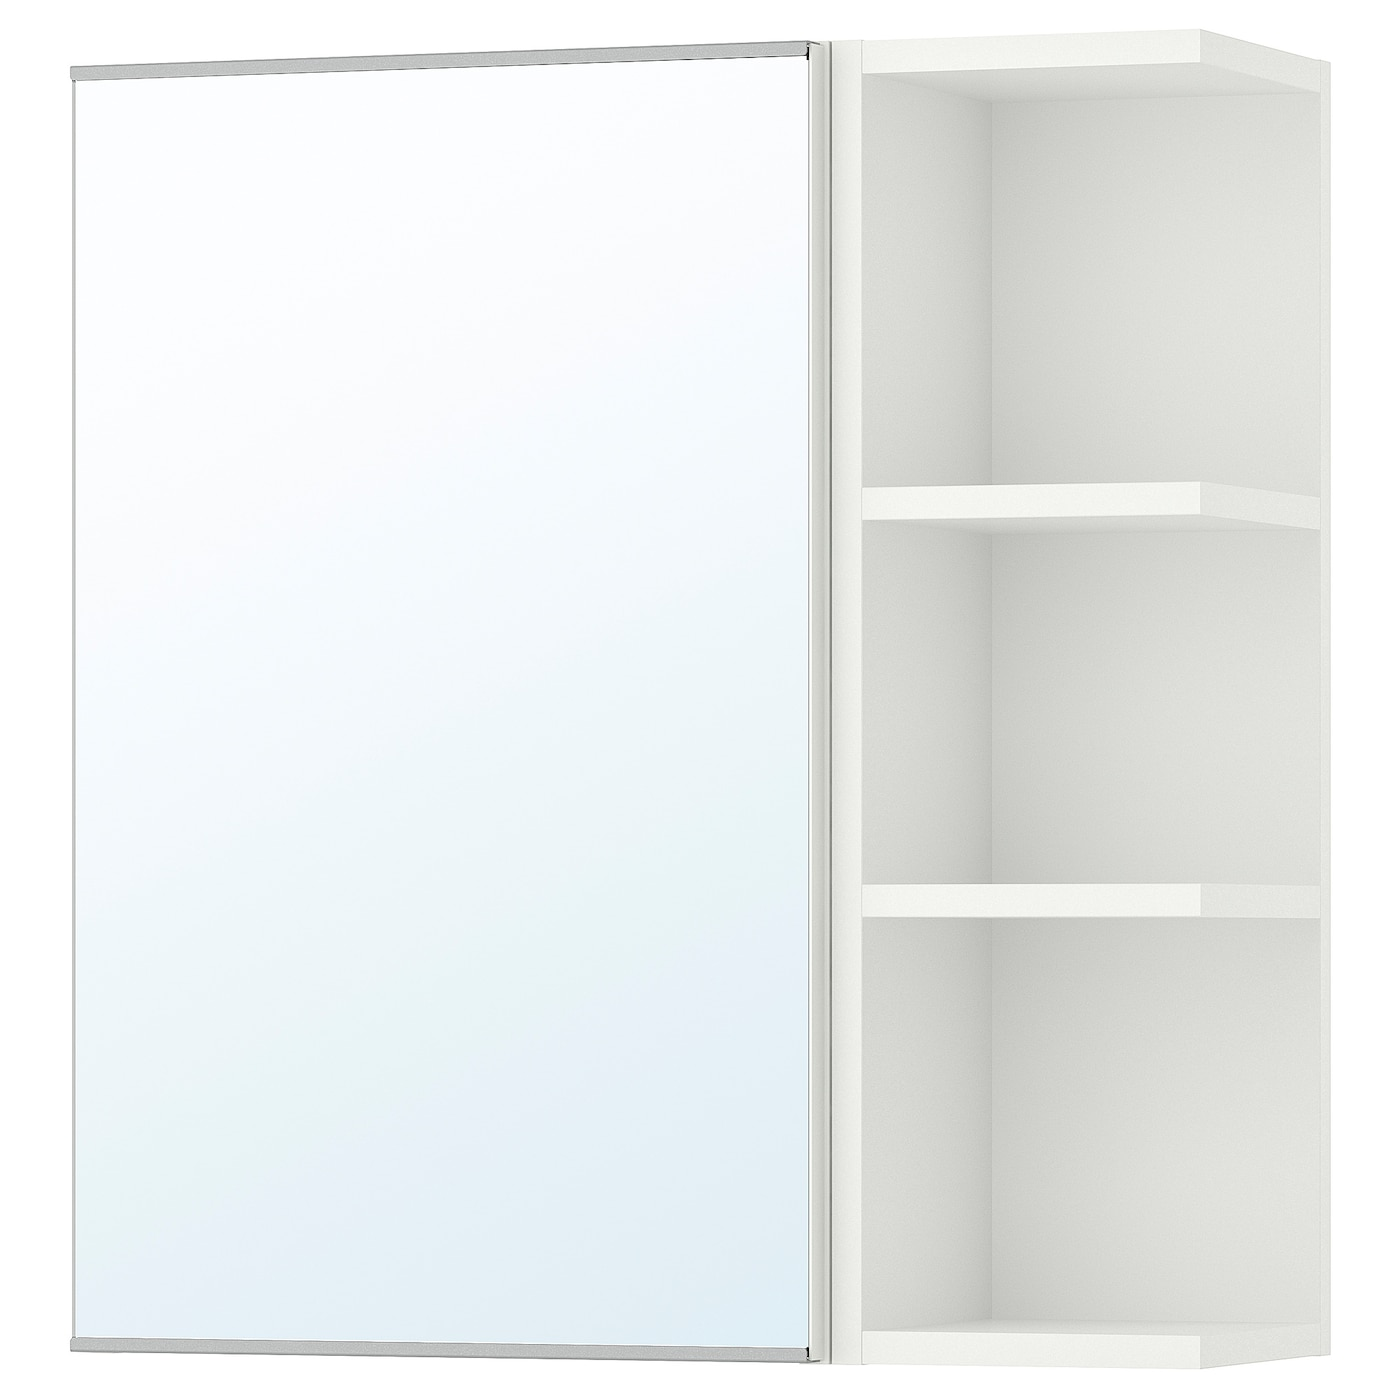 IKEA LILLÅNGEN mirror cabinet 1 door/1 end unit